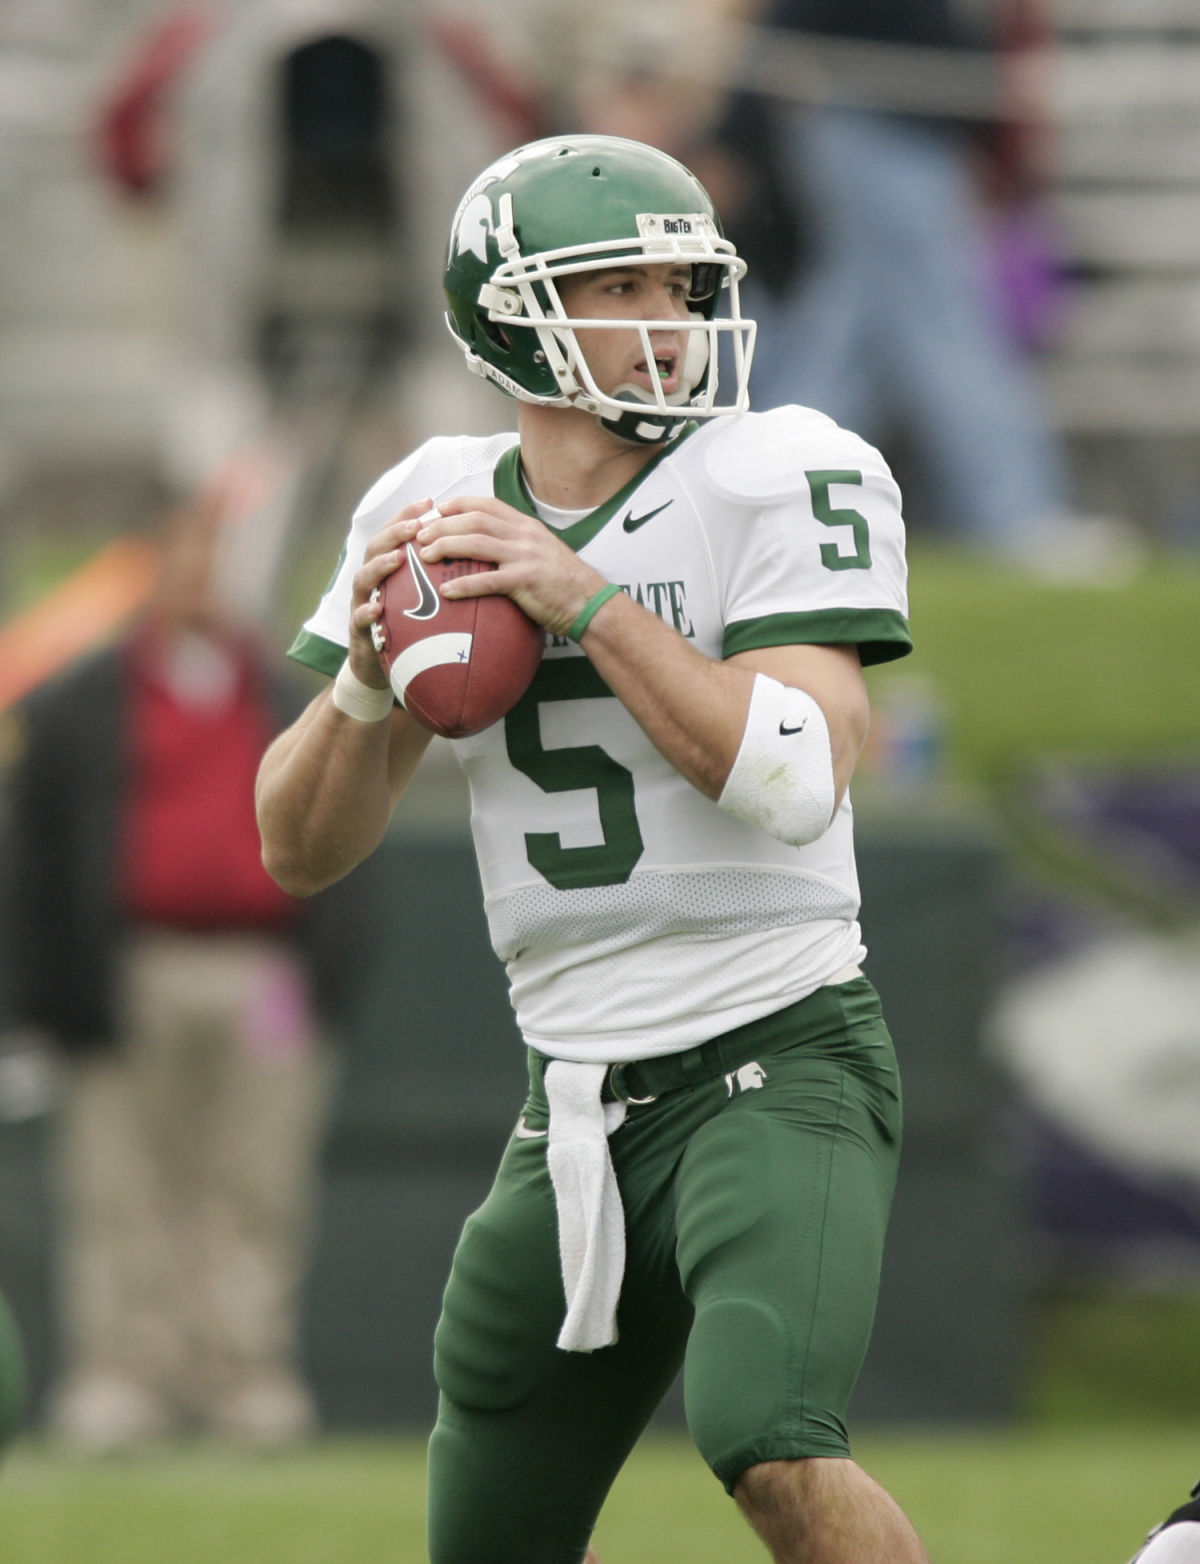 Stanton Selected 2007 Michigan College Male Athlete Of The Year ...